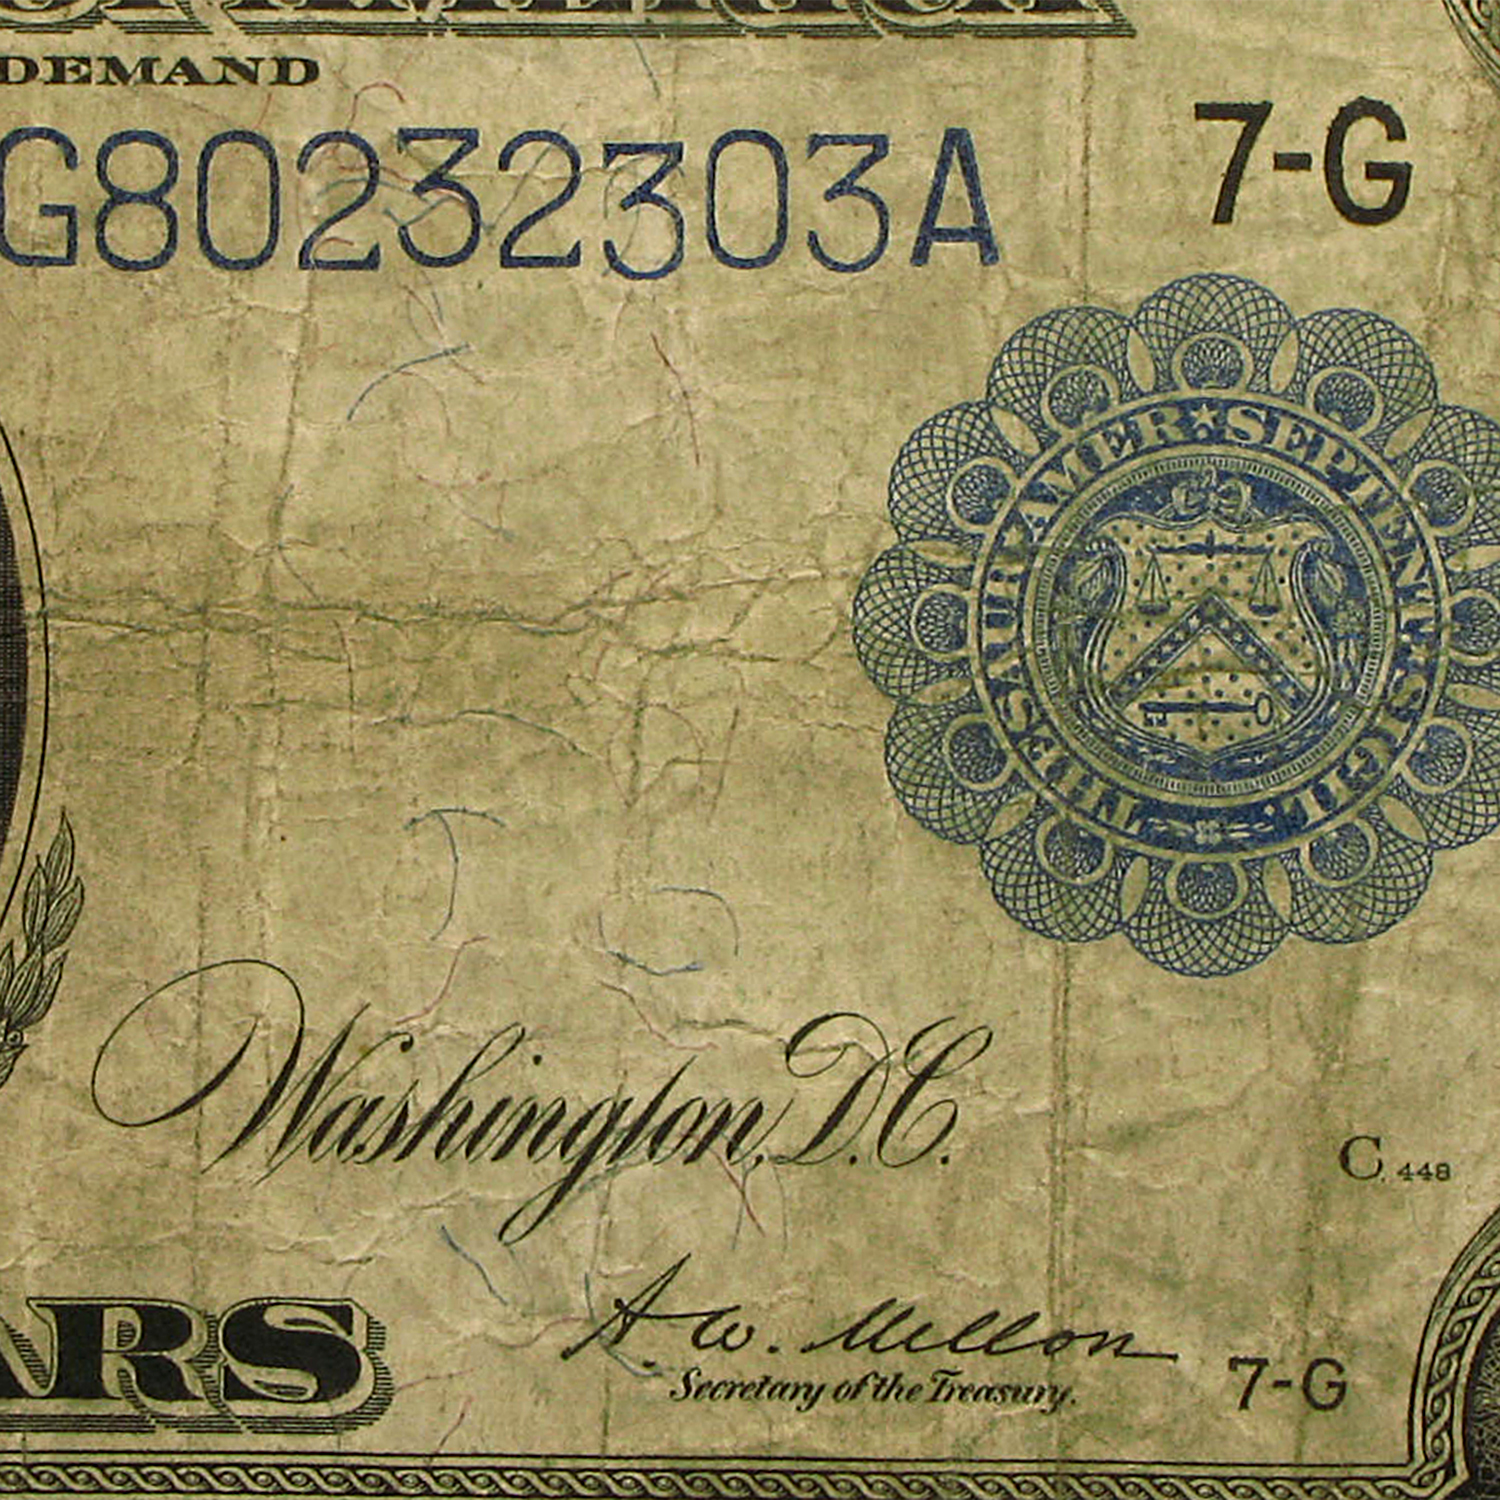 1914 (G-Chicago) $10 FRN VG